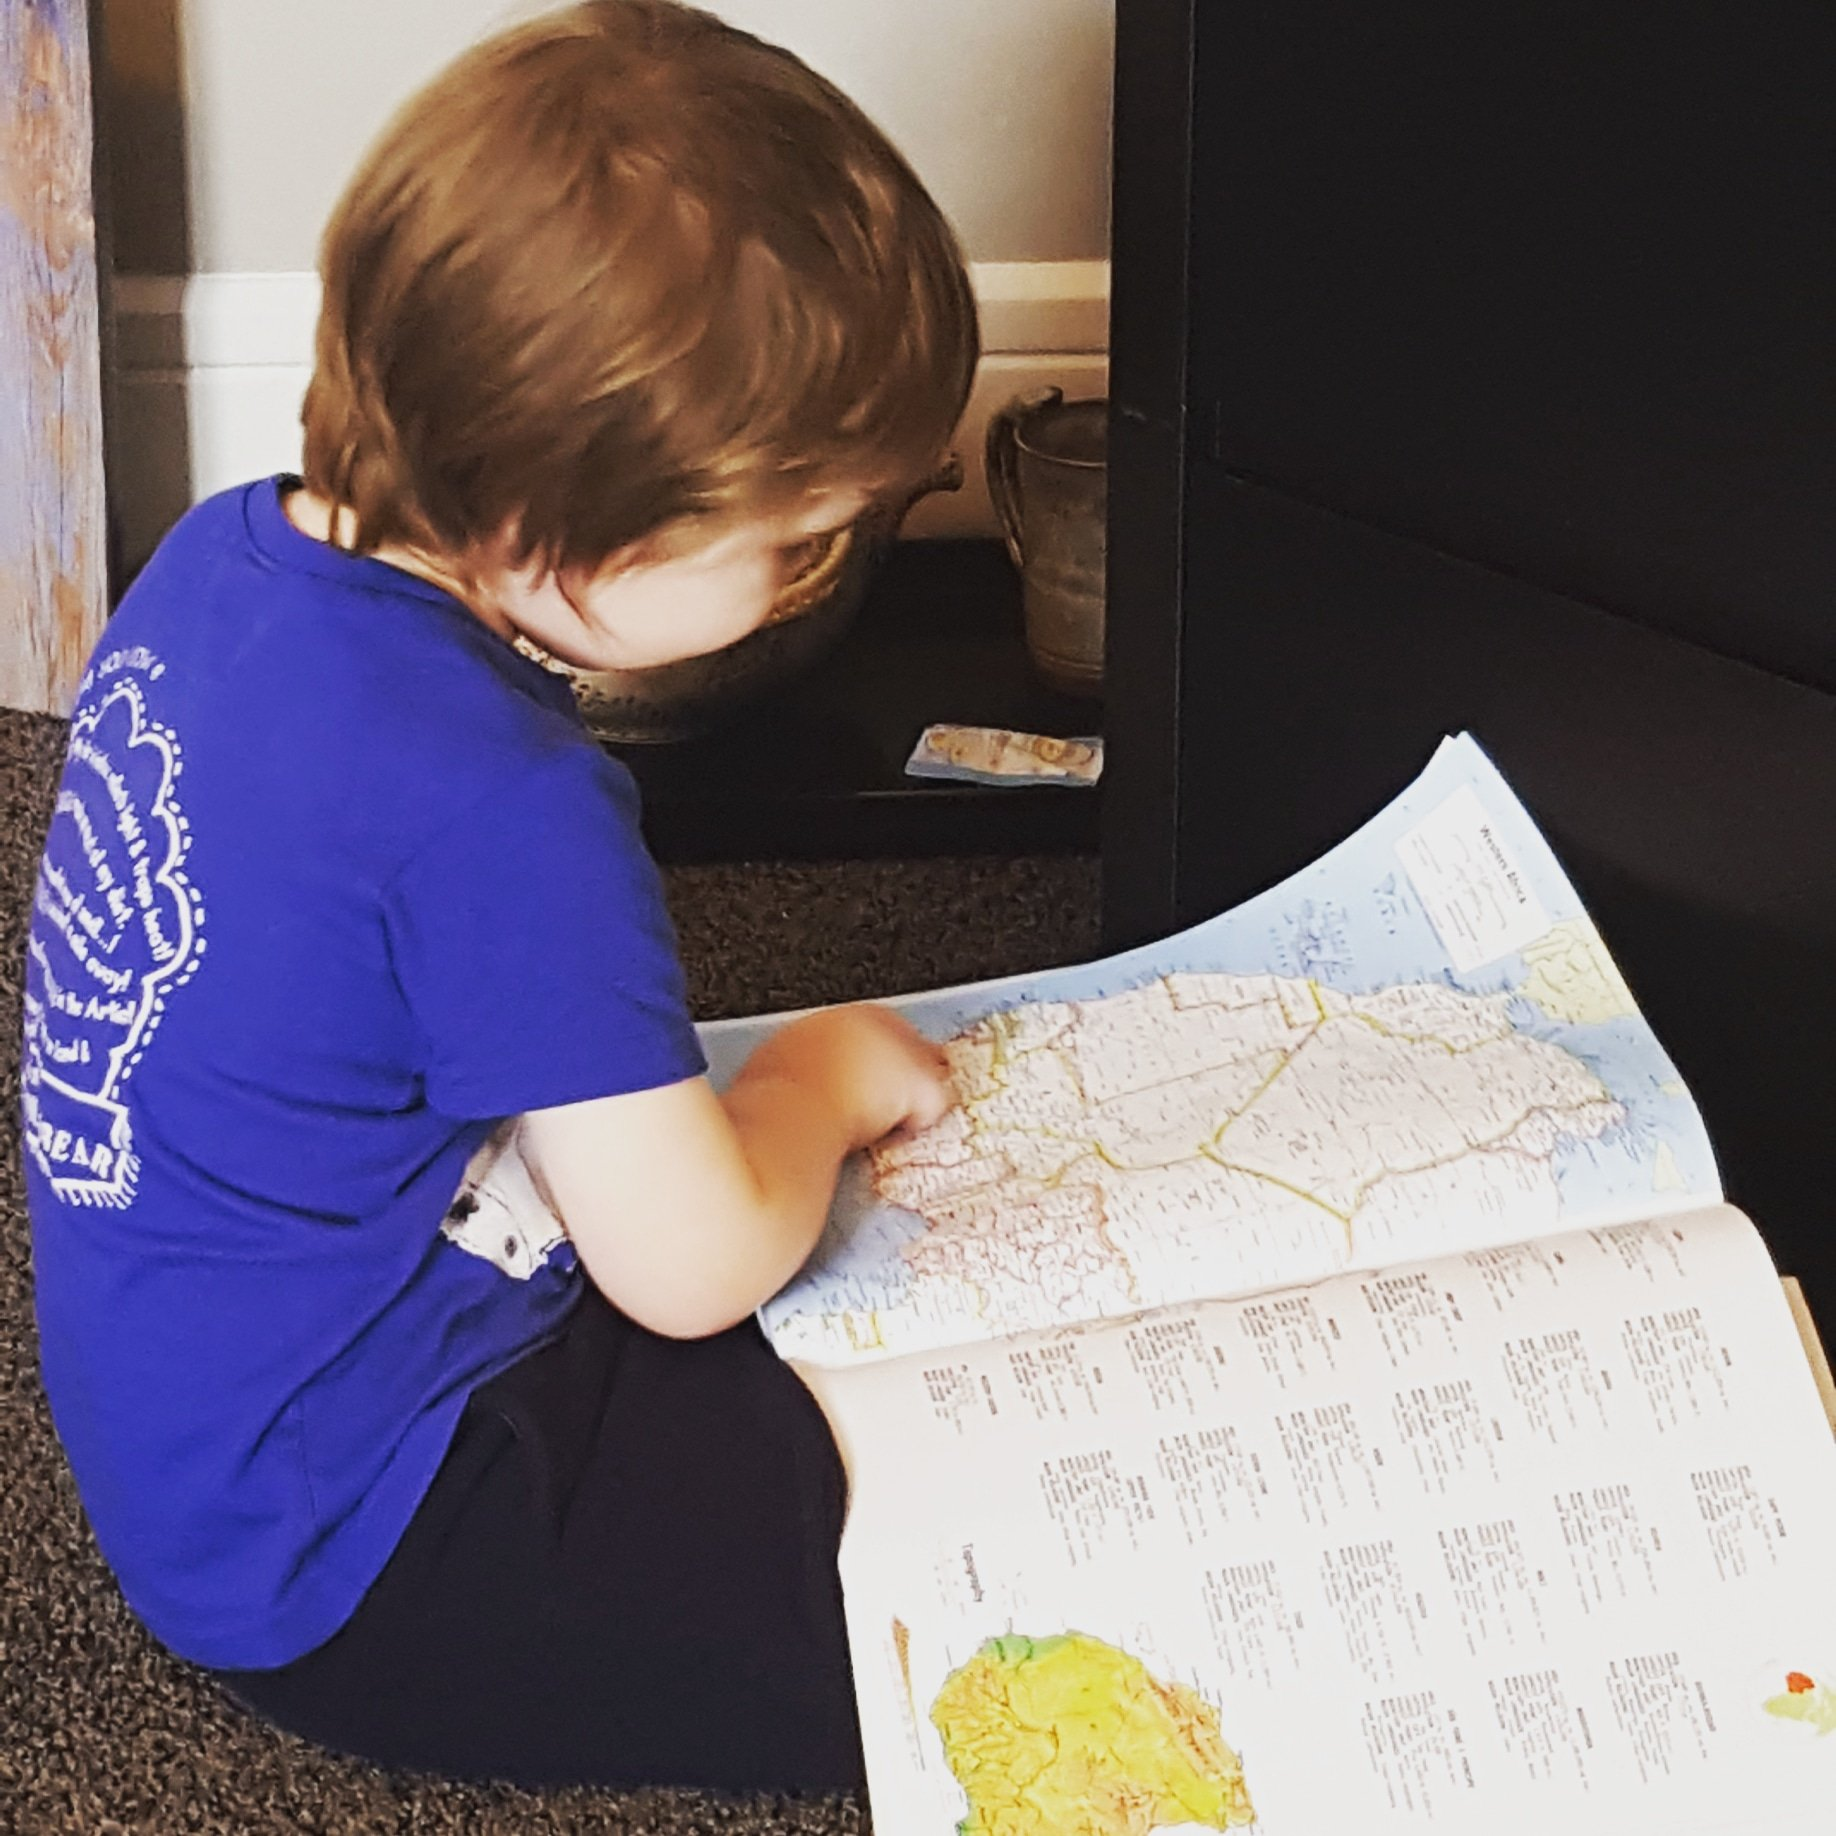 Cub loves atlases as much as I did as a kid, although he started reading them way before I did.